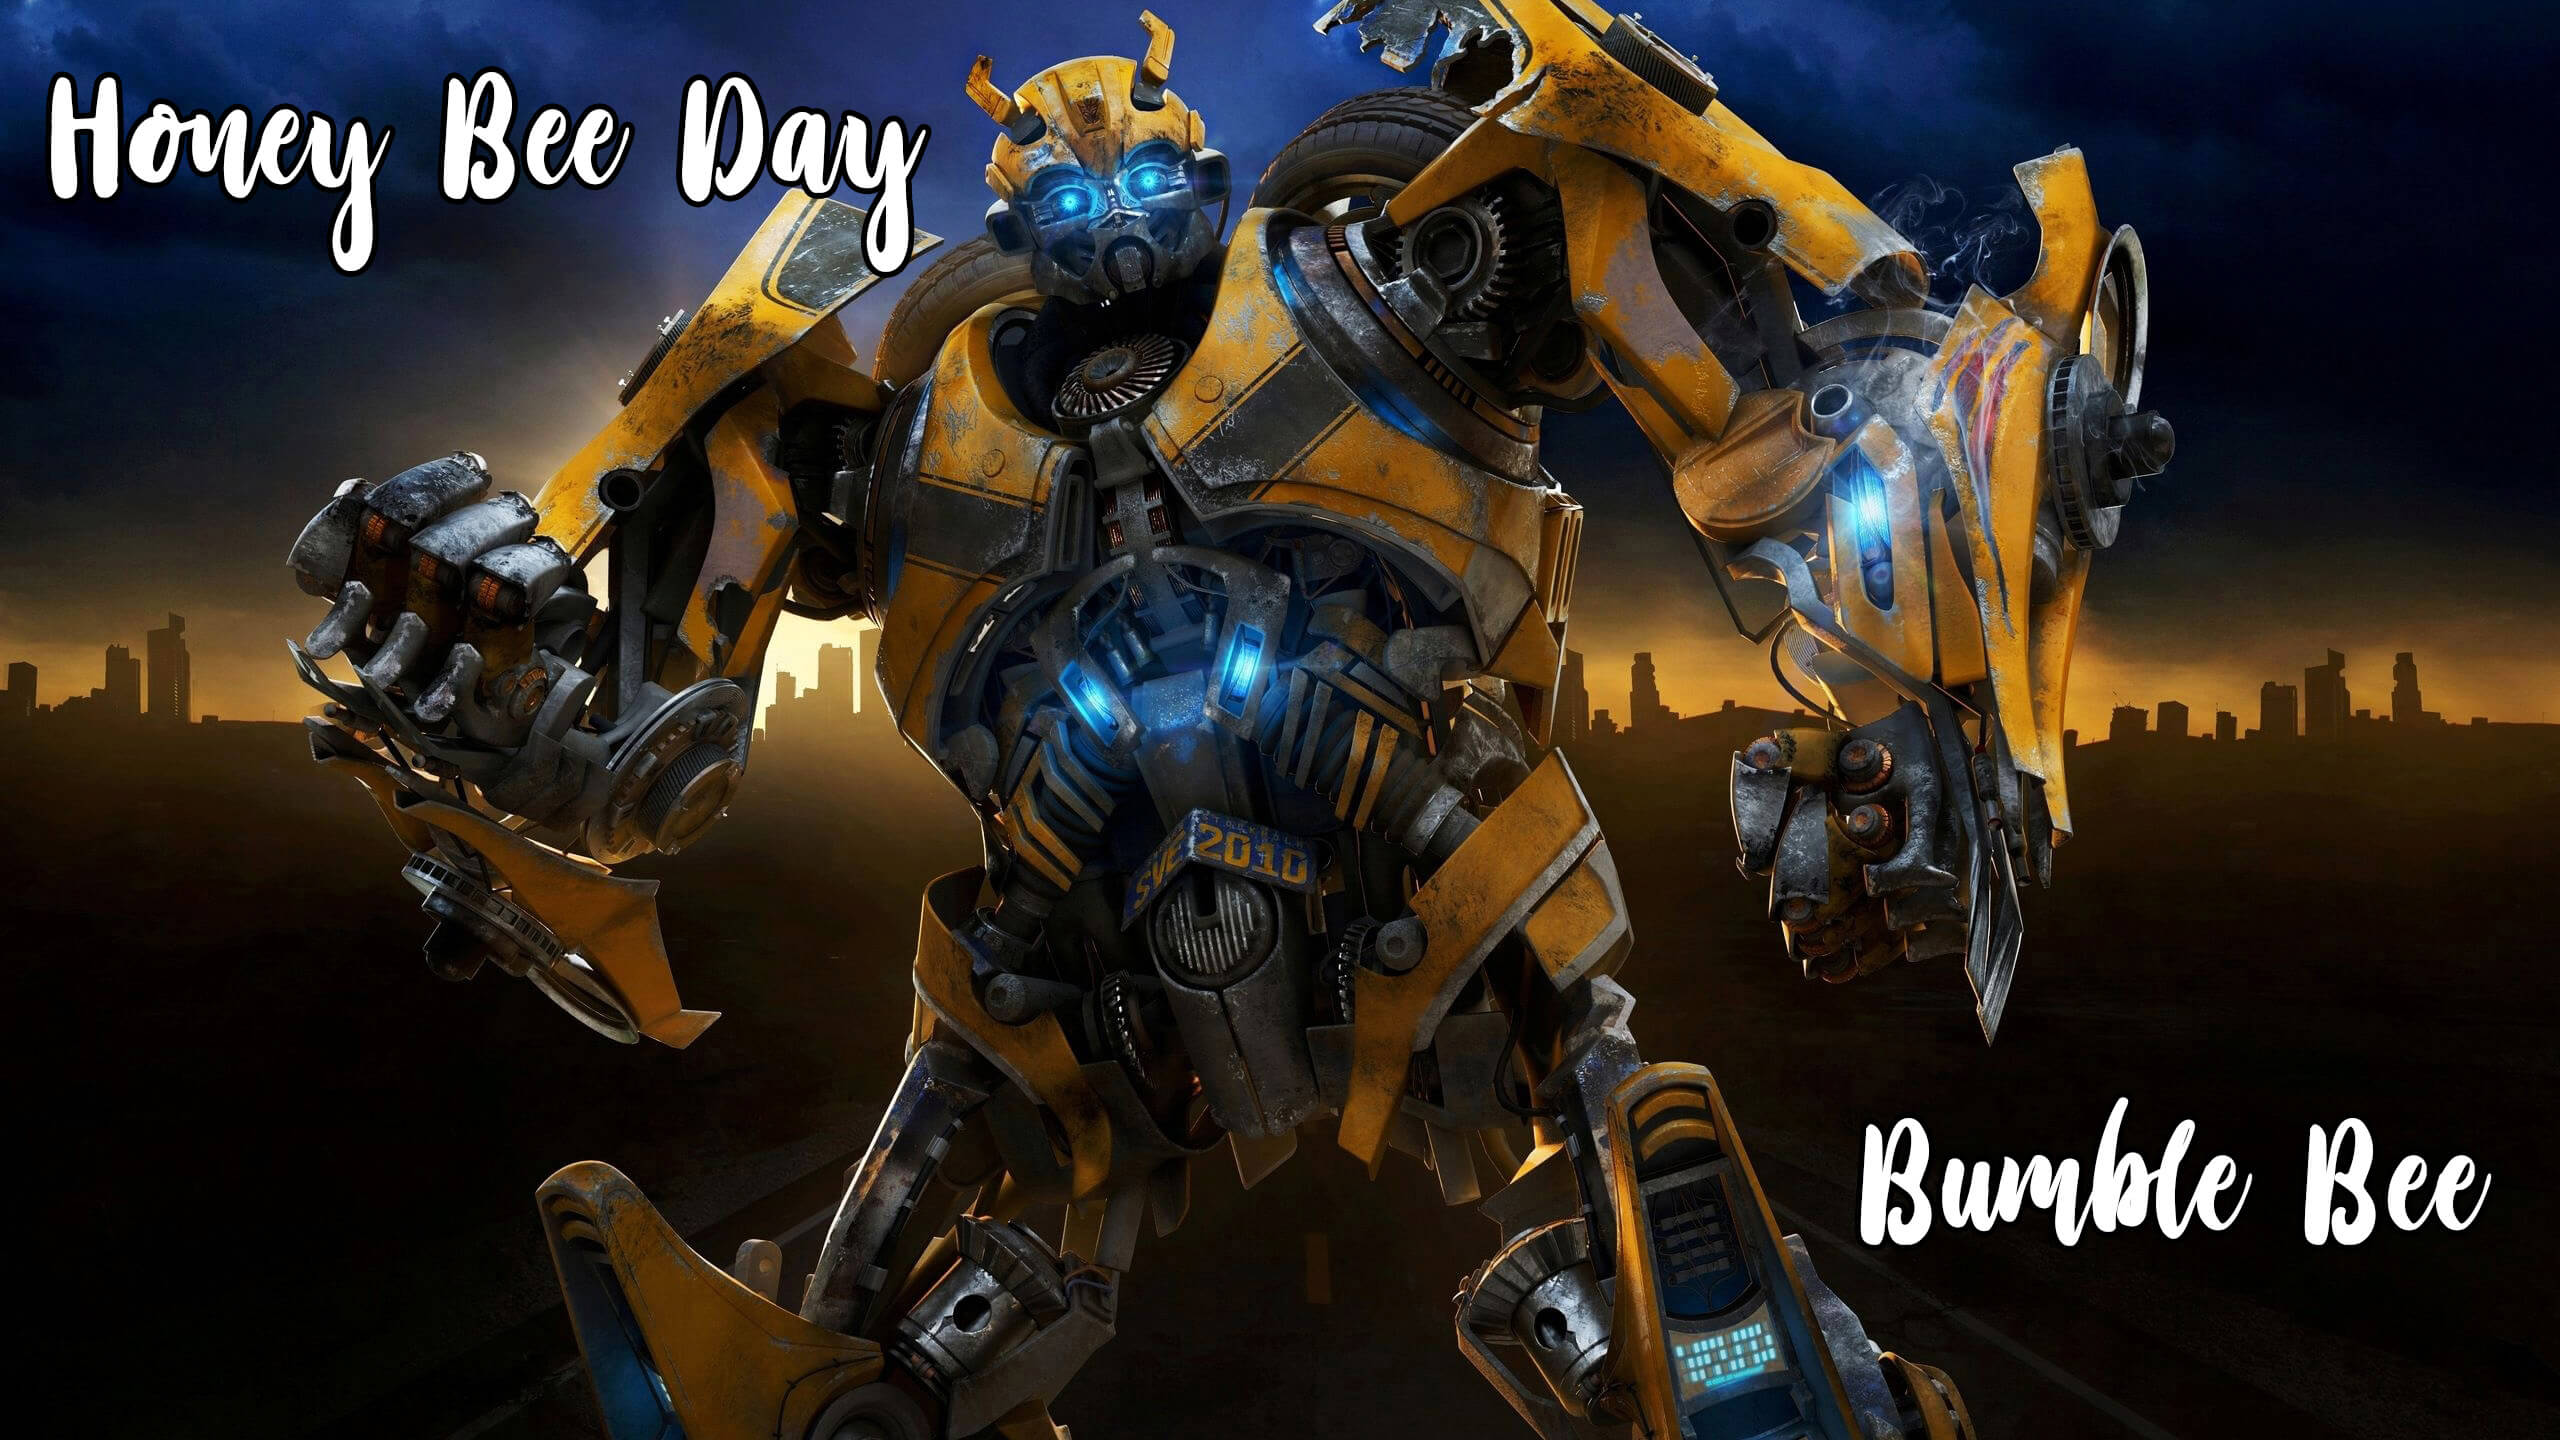 happy honey bee day transformers bumblebee hd wallpaper